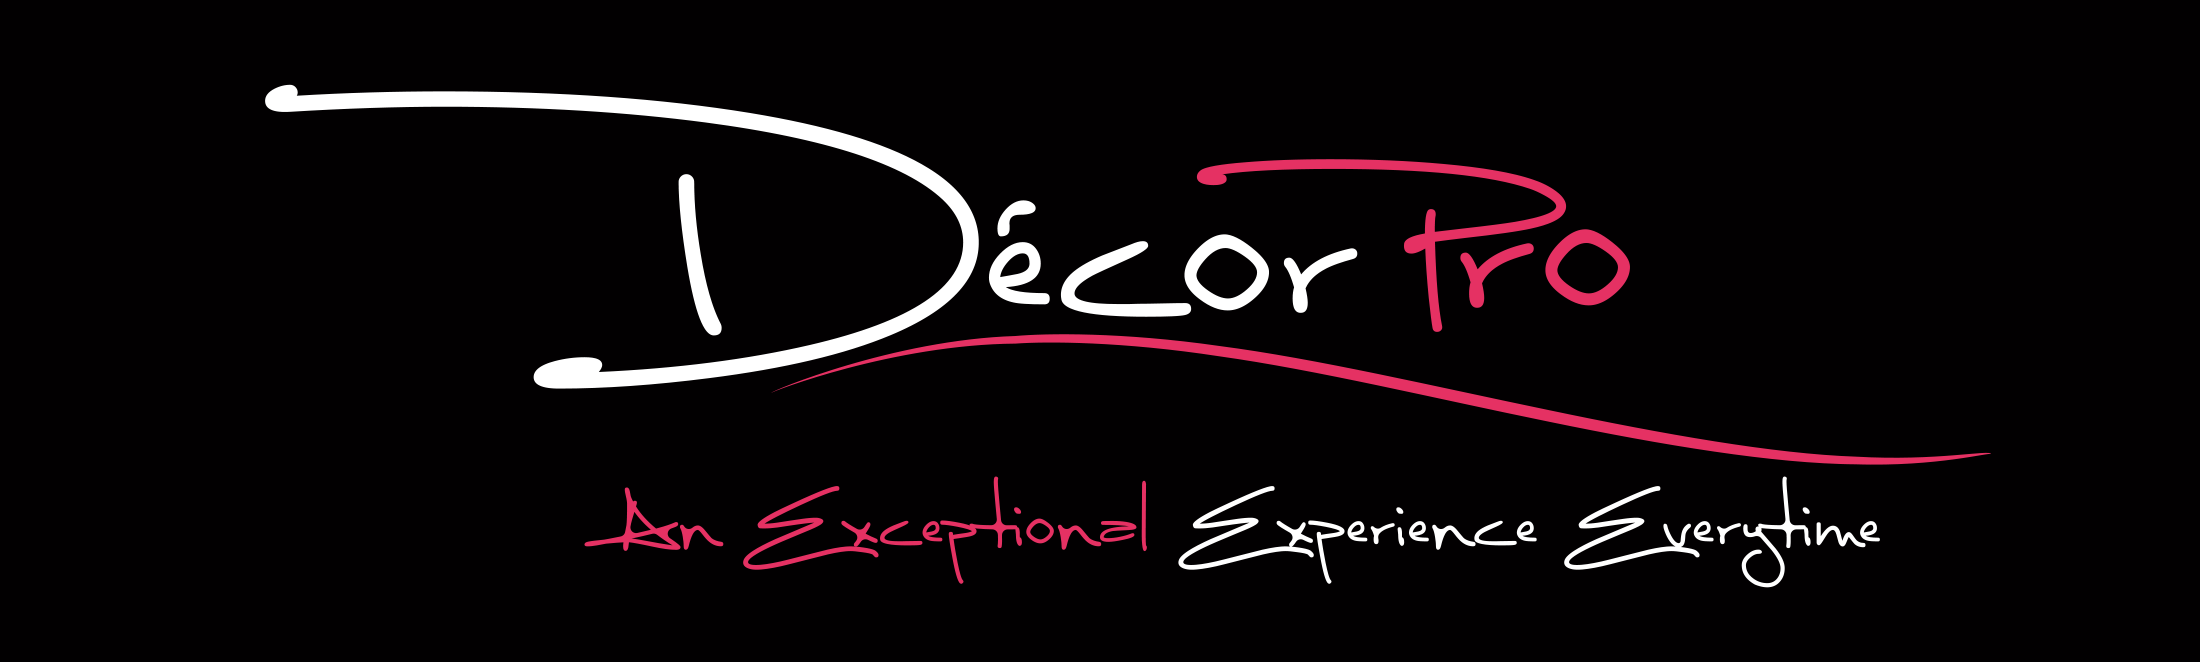 decor-pro   Product Page